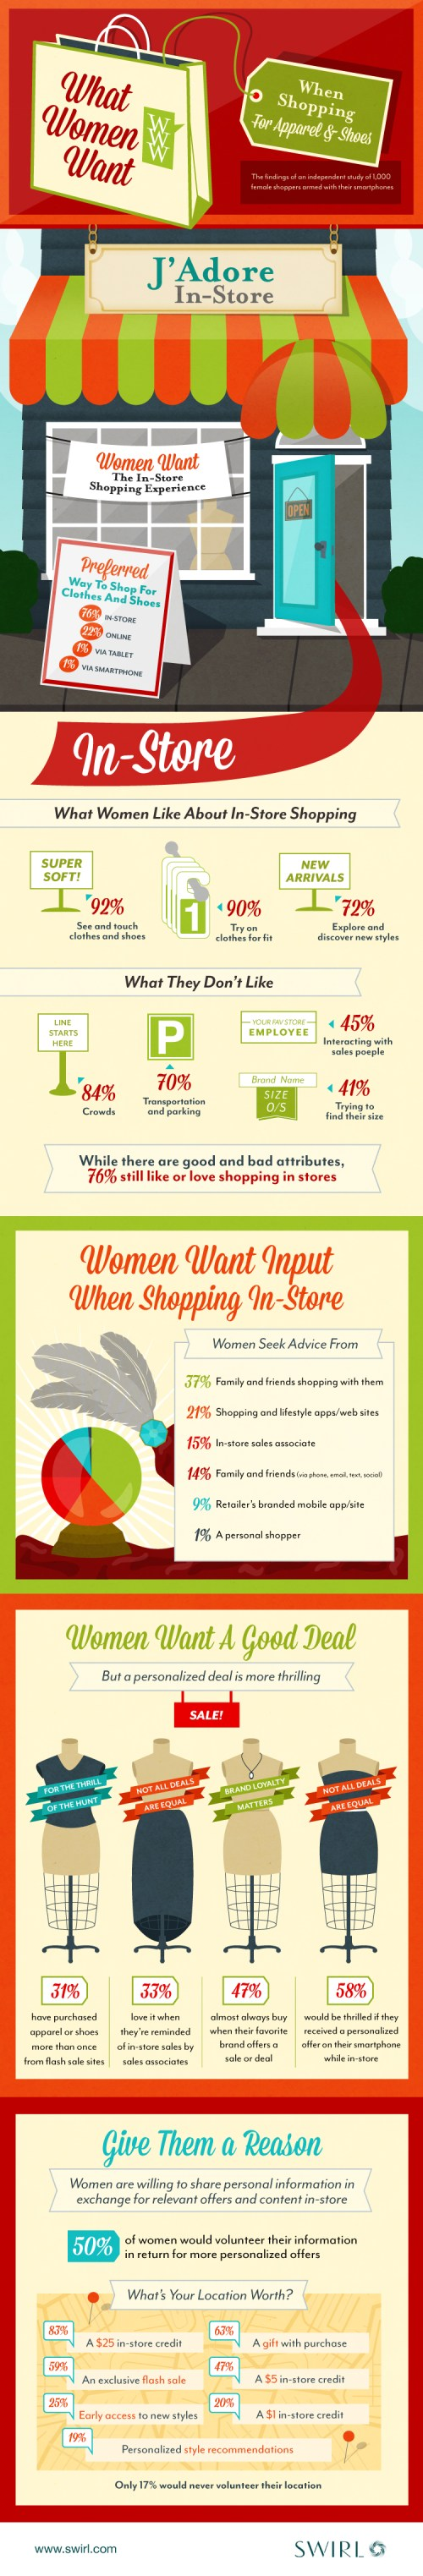 what-women-want-when-shopping-for-apparel--shoes_5170129577693